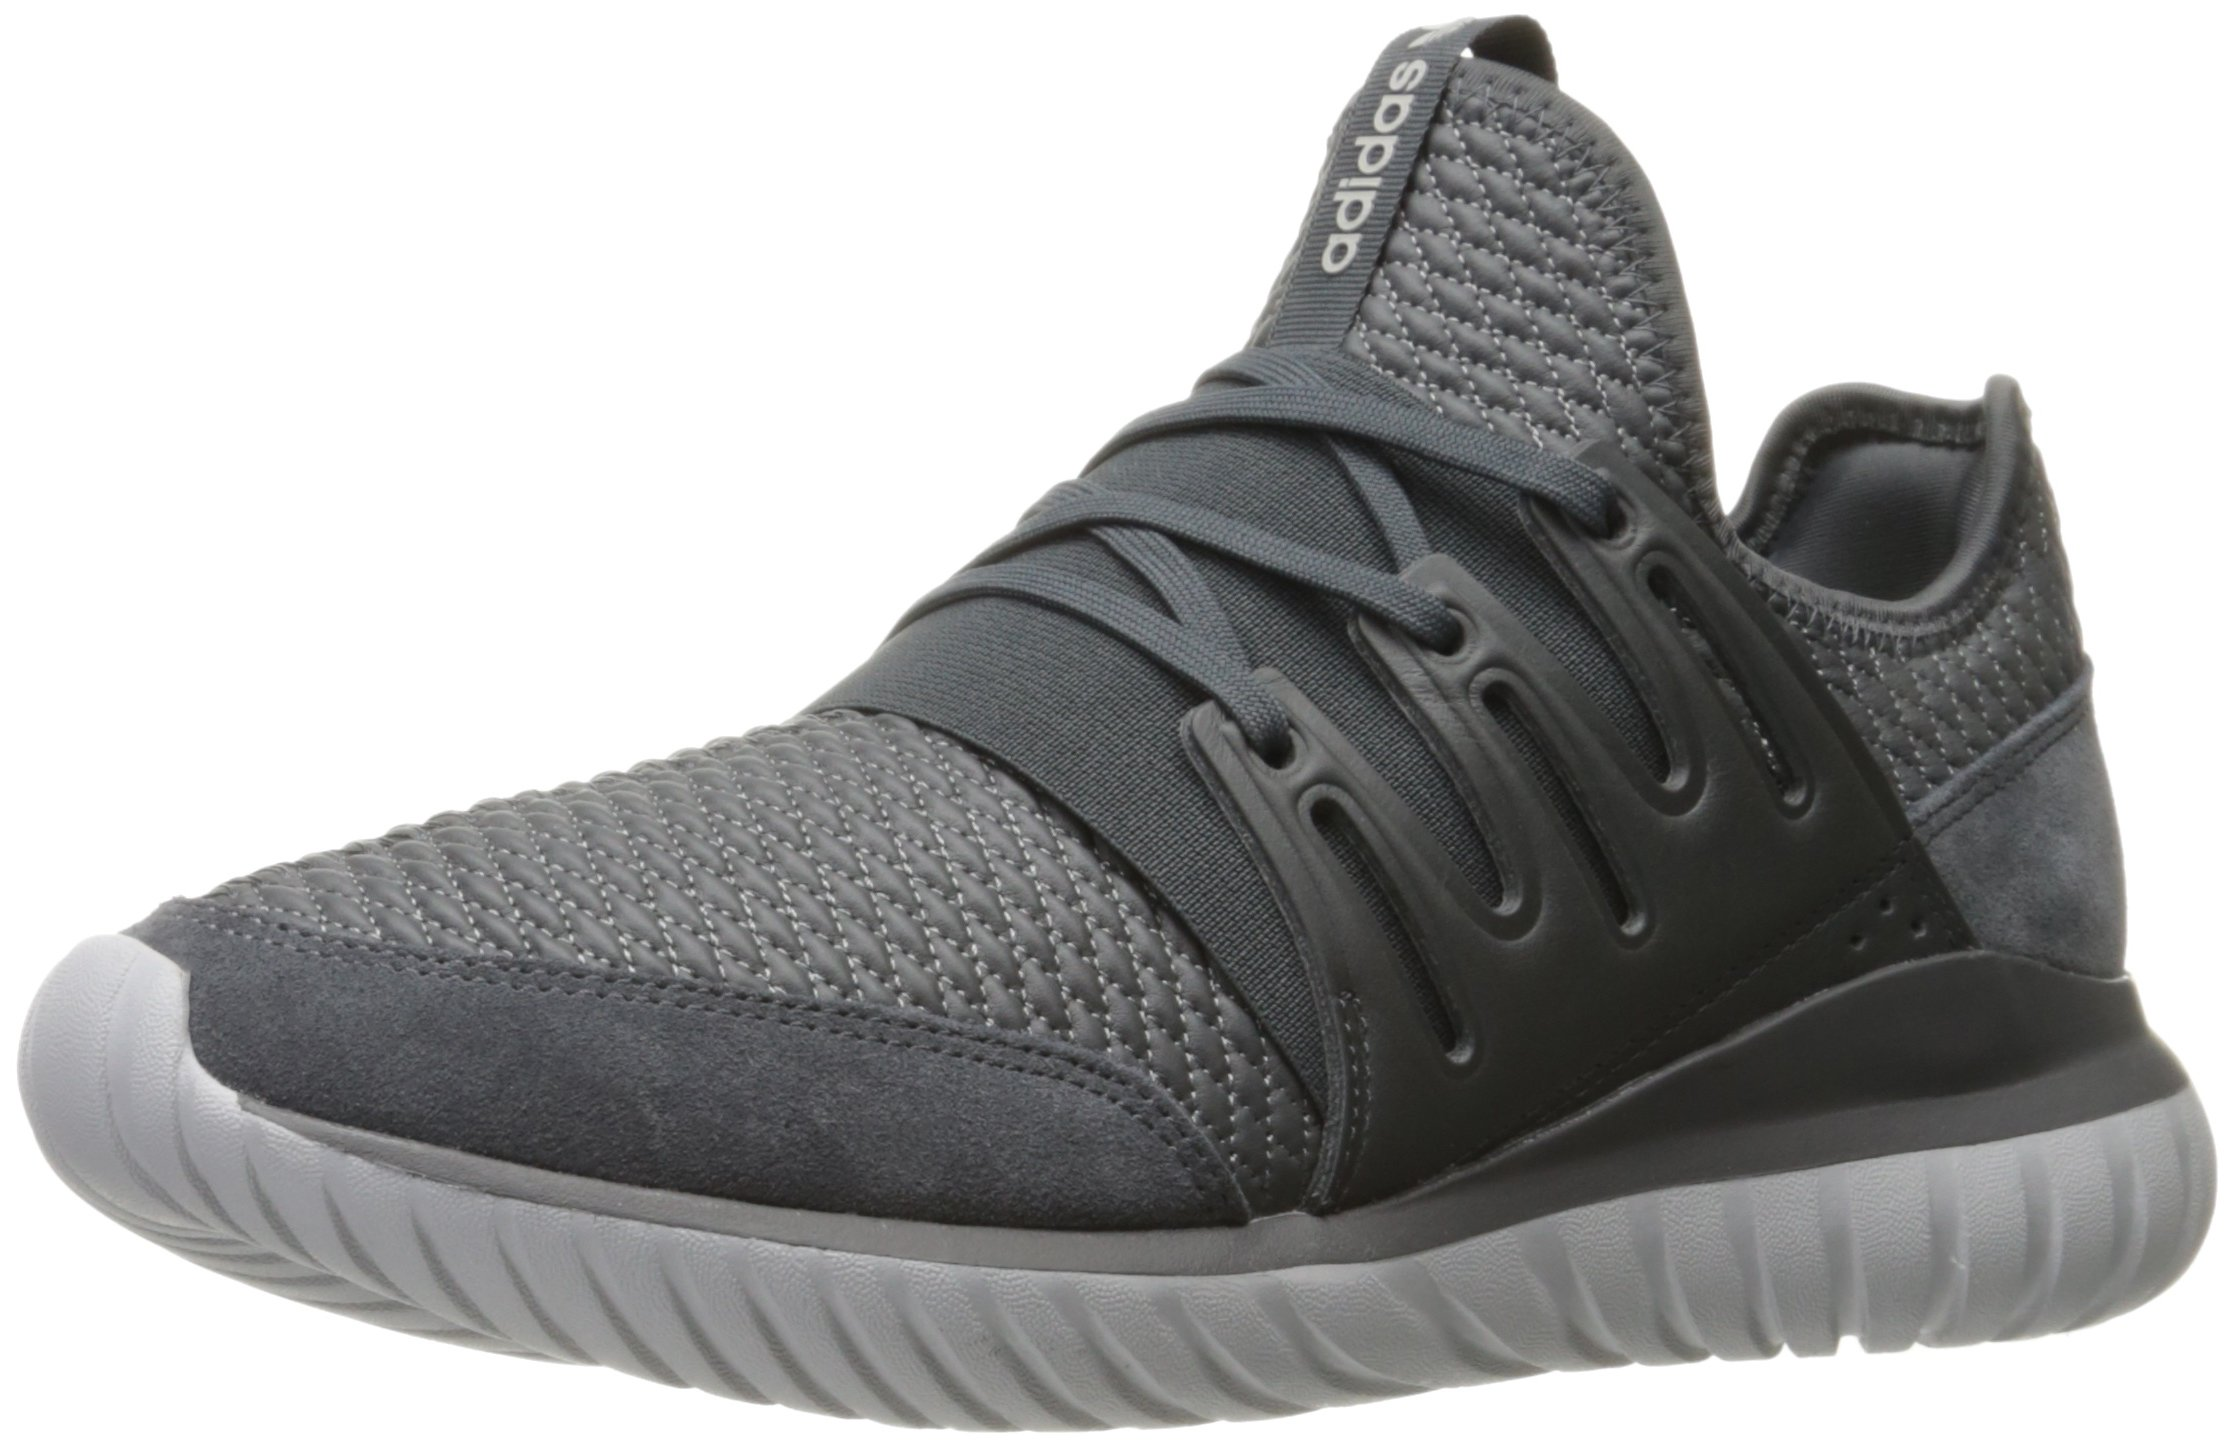 low priced 3c6ca 7e2b1 Galleon - Adidas Originals Men s Tubular Radial Running Shoe Dark Medium  Grey Heather, 5 M US